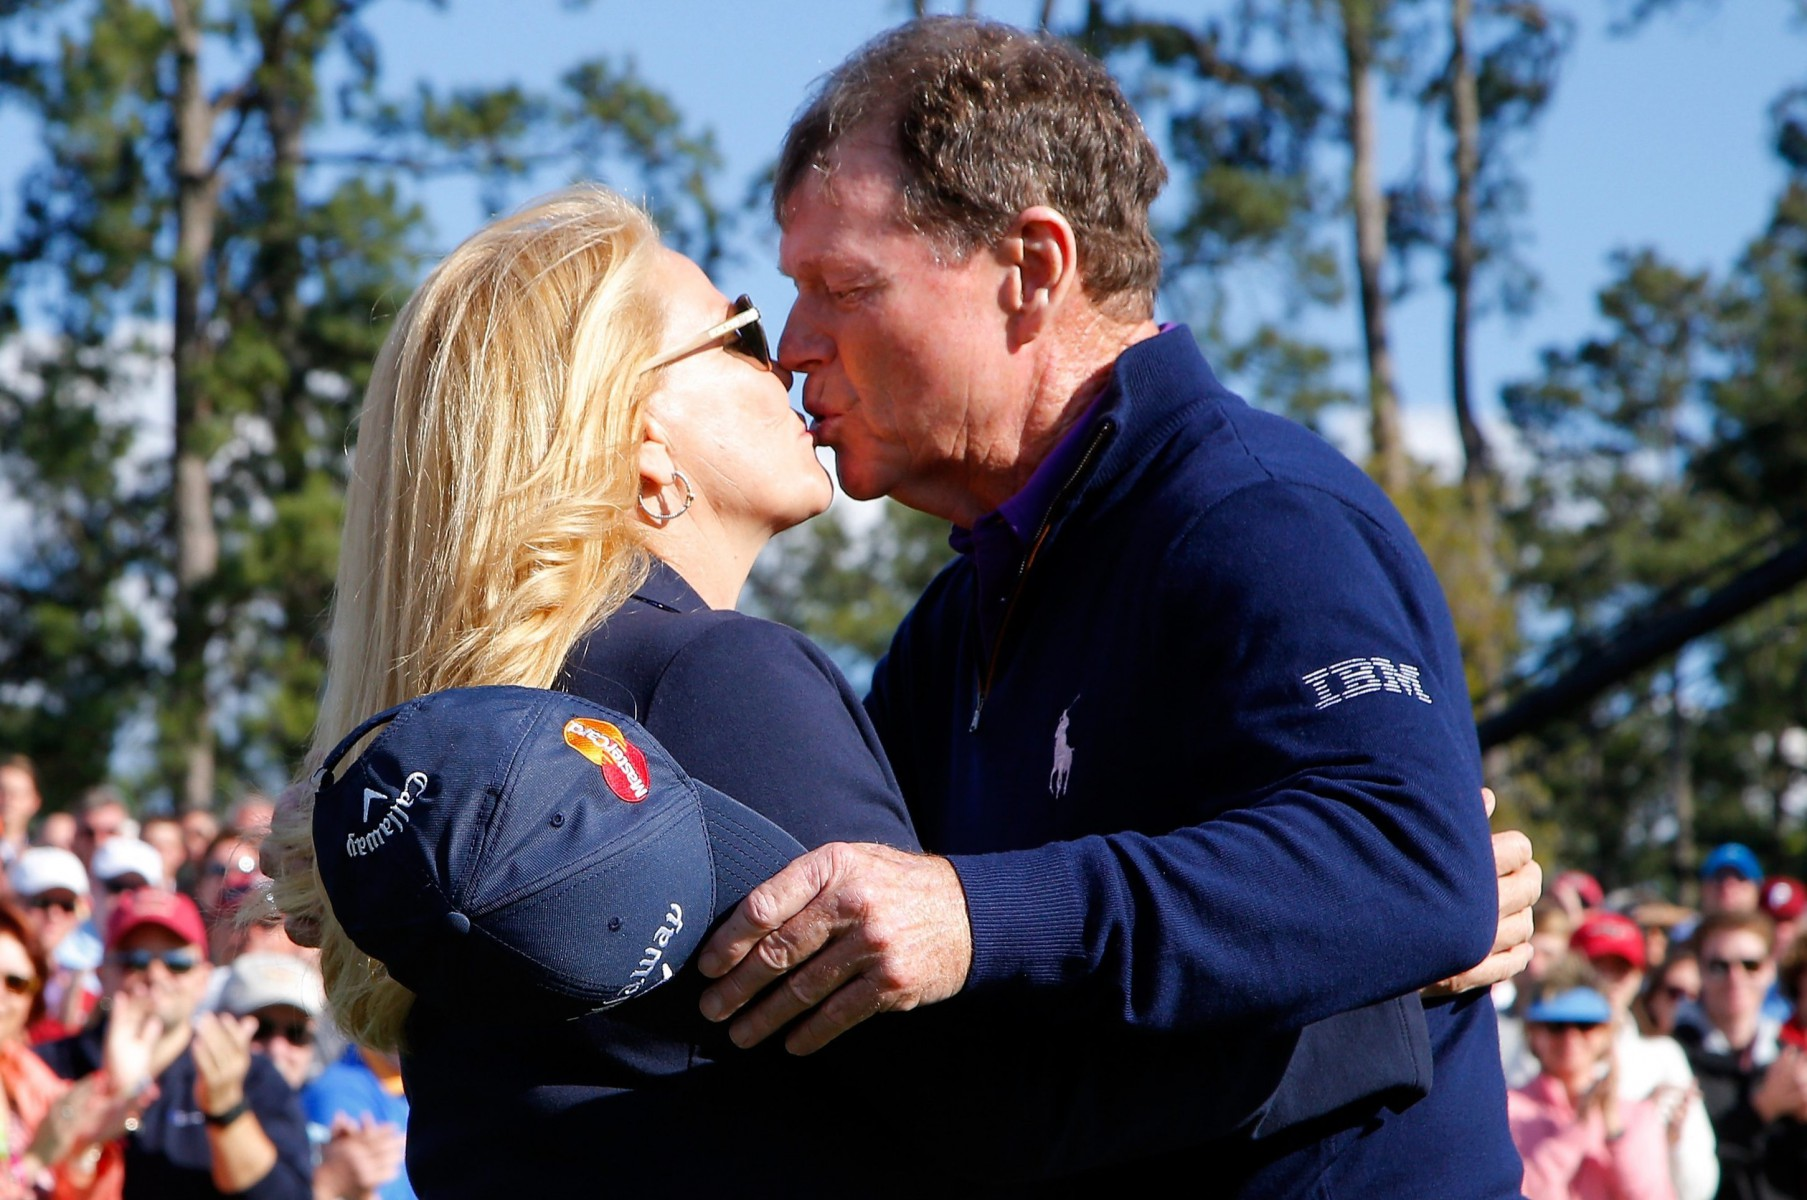 Watson kisses his wife at the 2016 Masters Tournament at Augusta National Golf Club